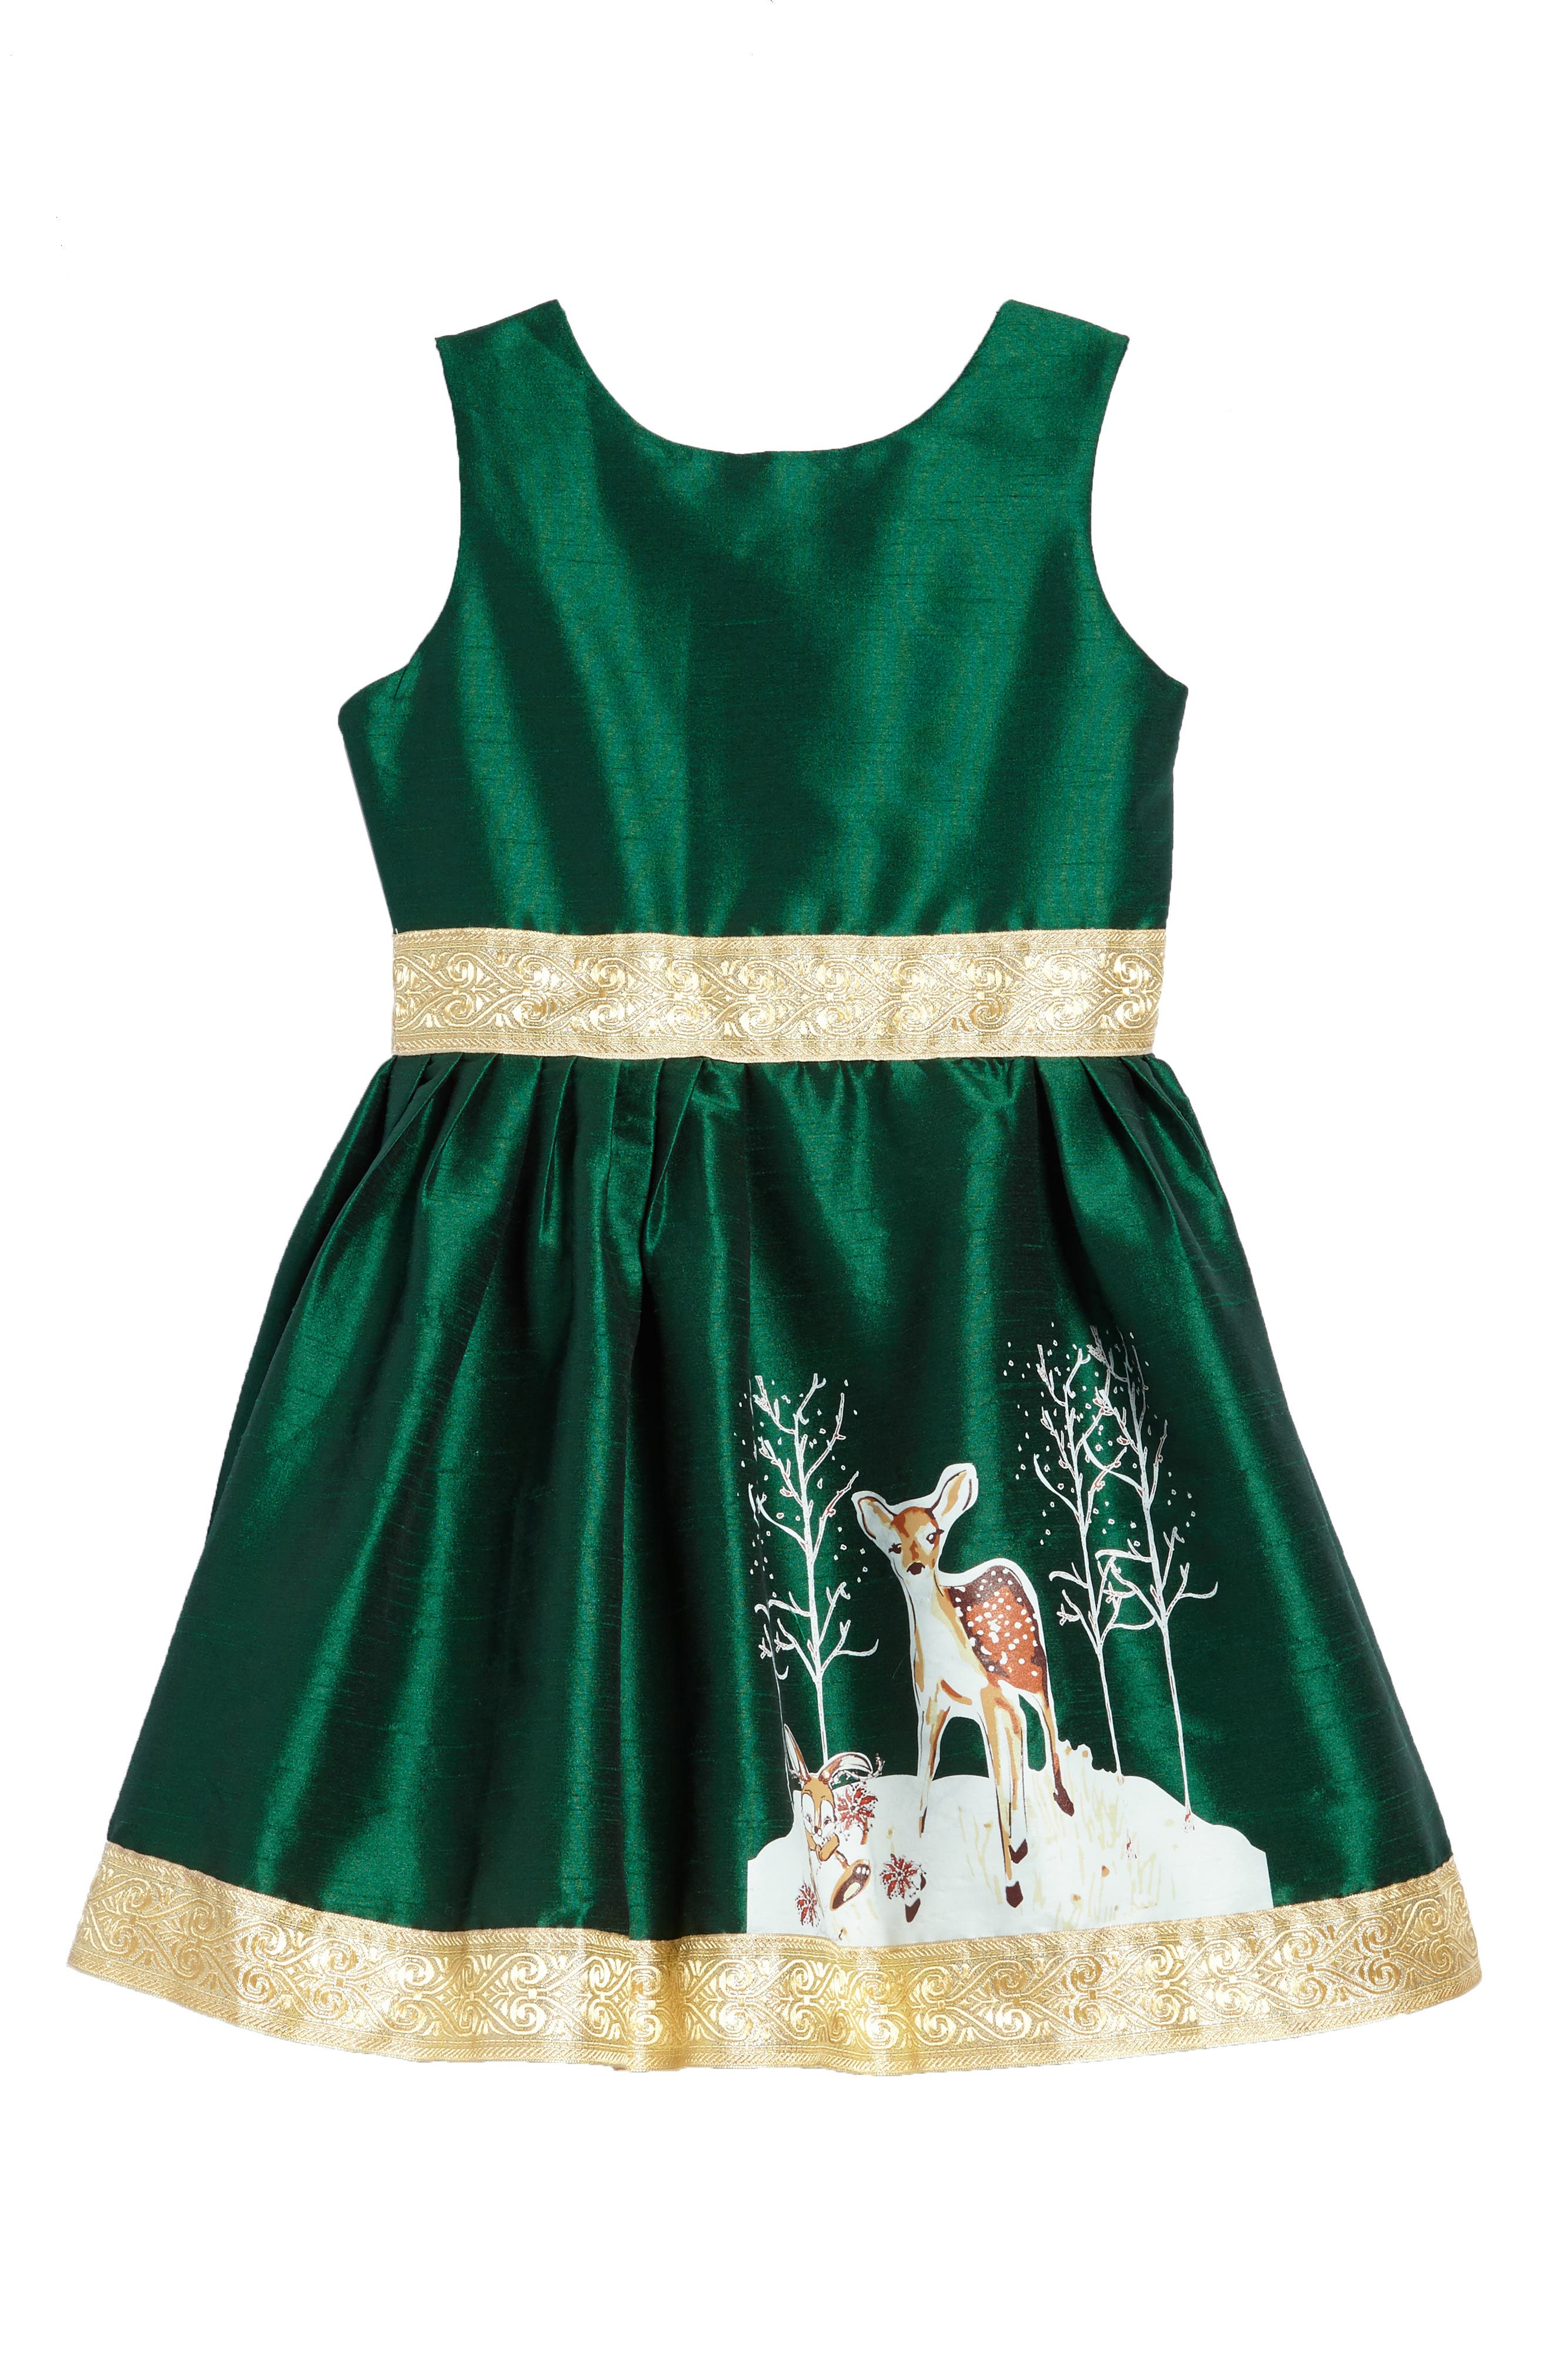 Fawn of Winter Dress,                         Main,                         color, 300